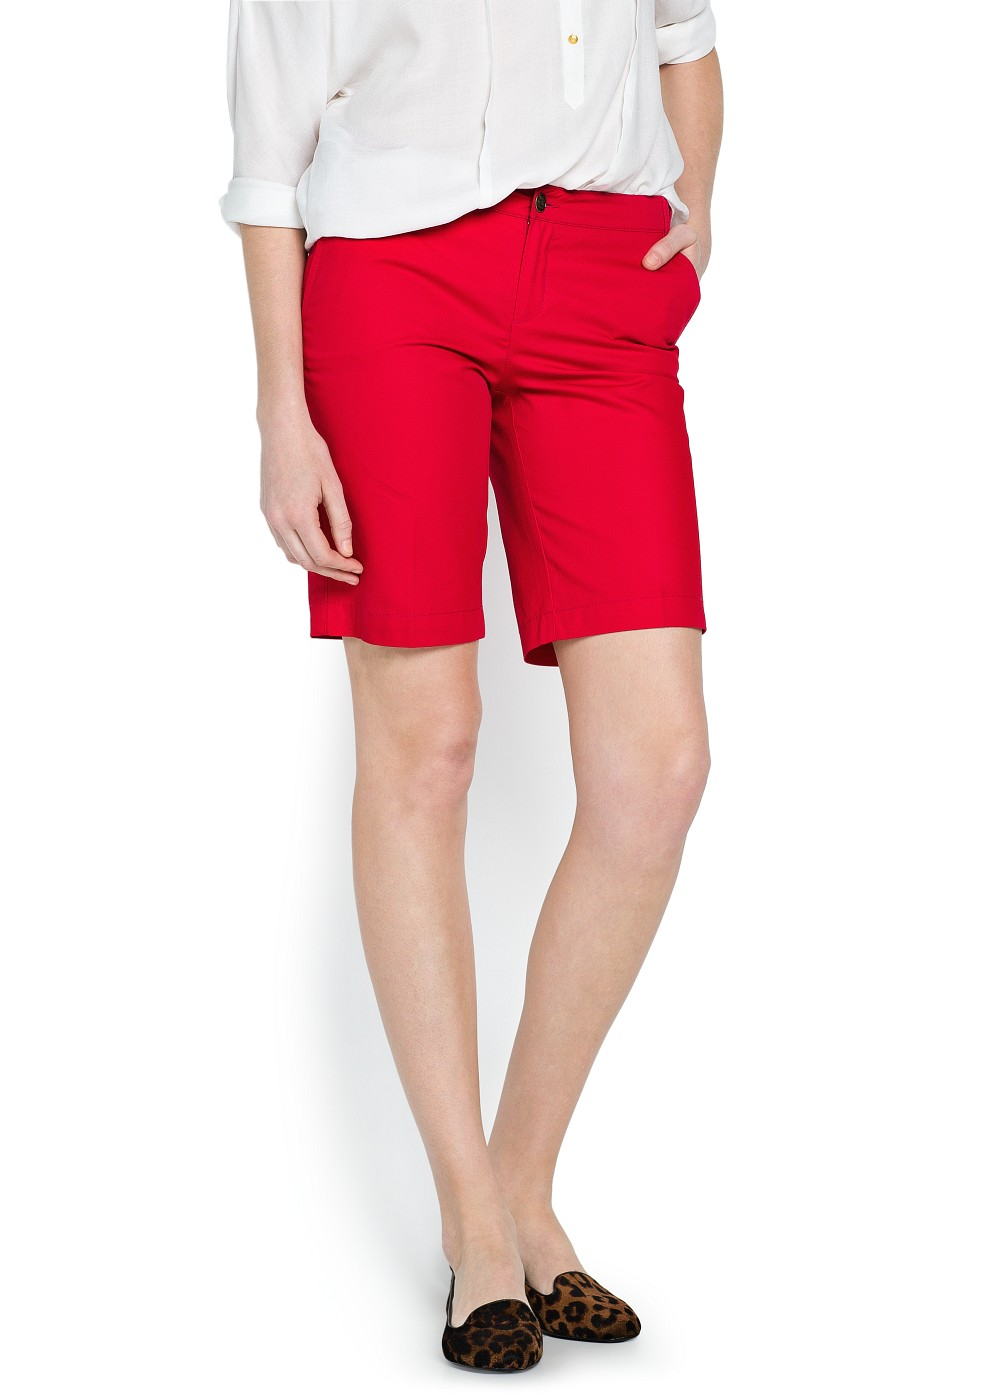 Mango Chino Style Cotton Bermuda Shorts in Red | Lyst